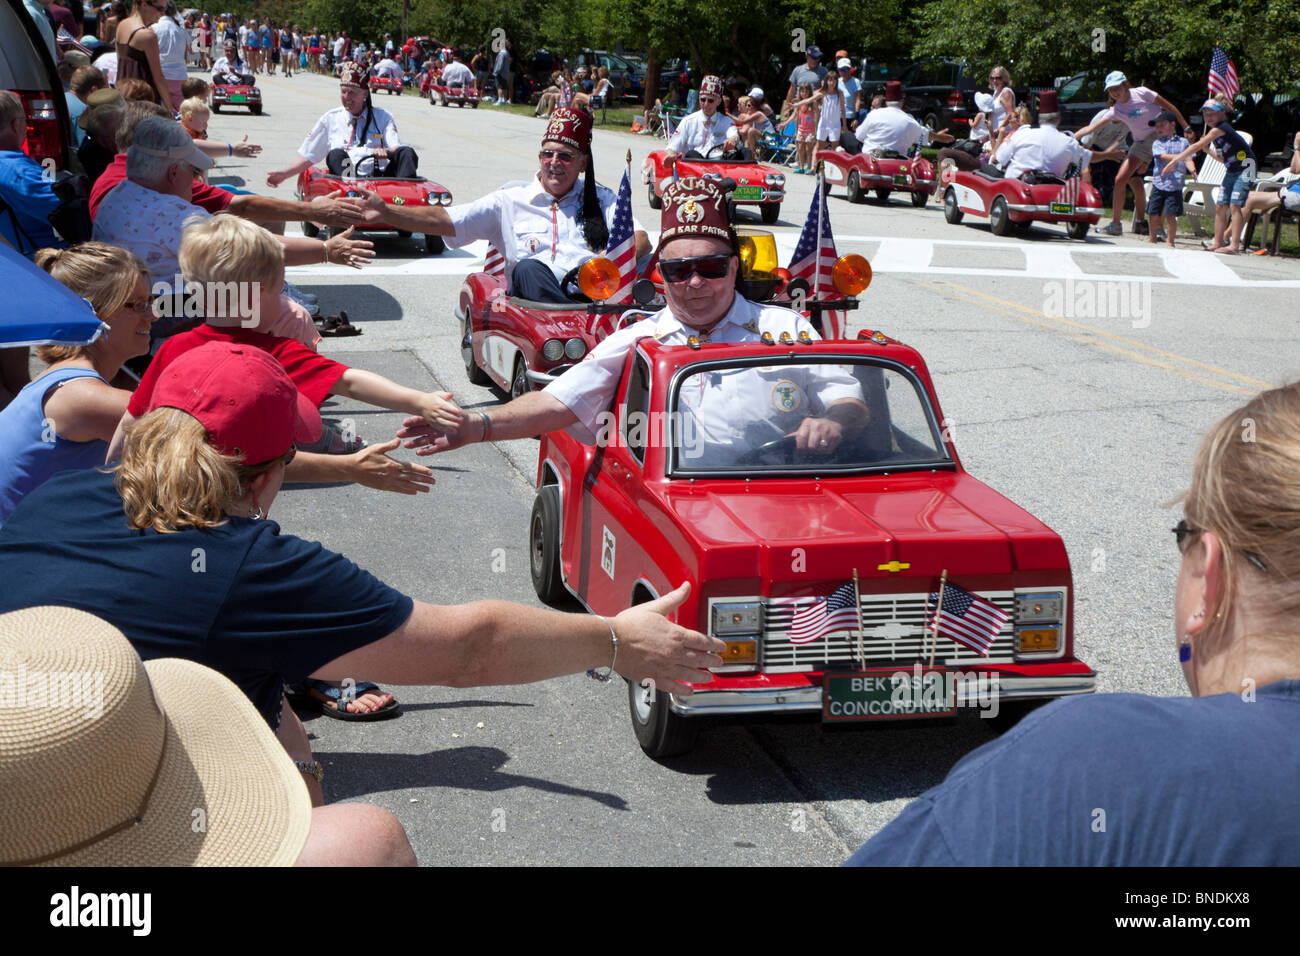 Shriners drive small cars in july 4 parade